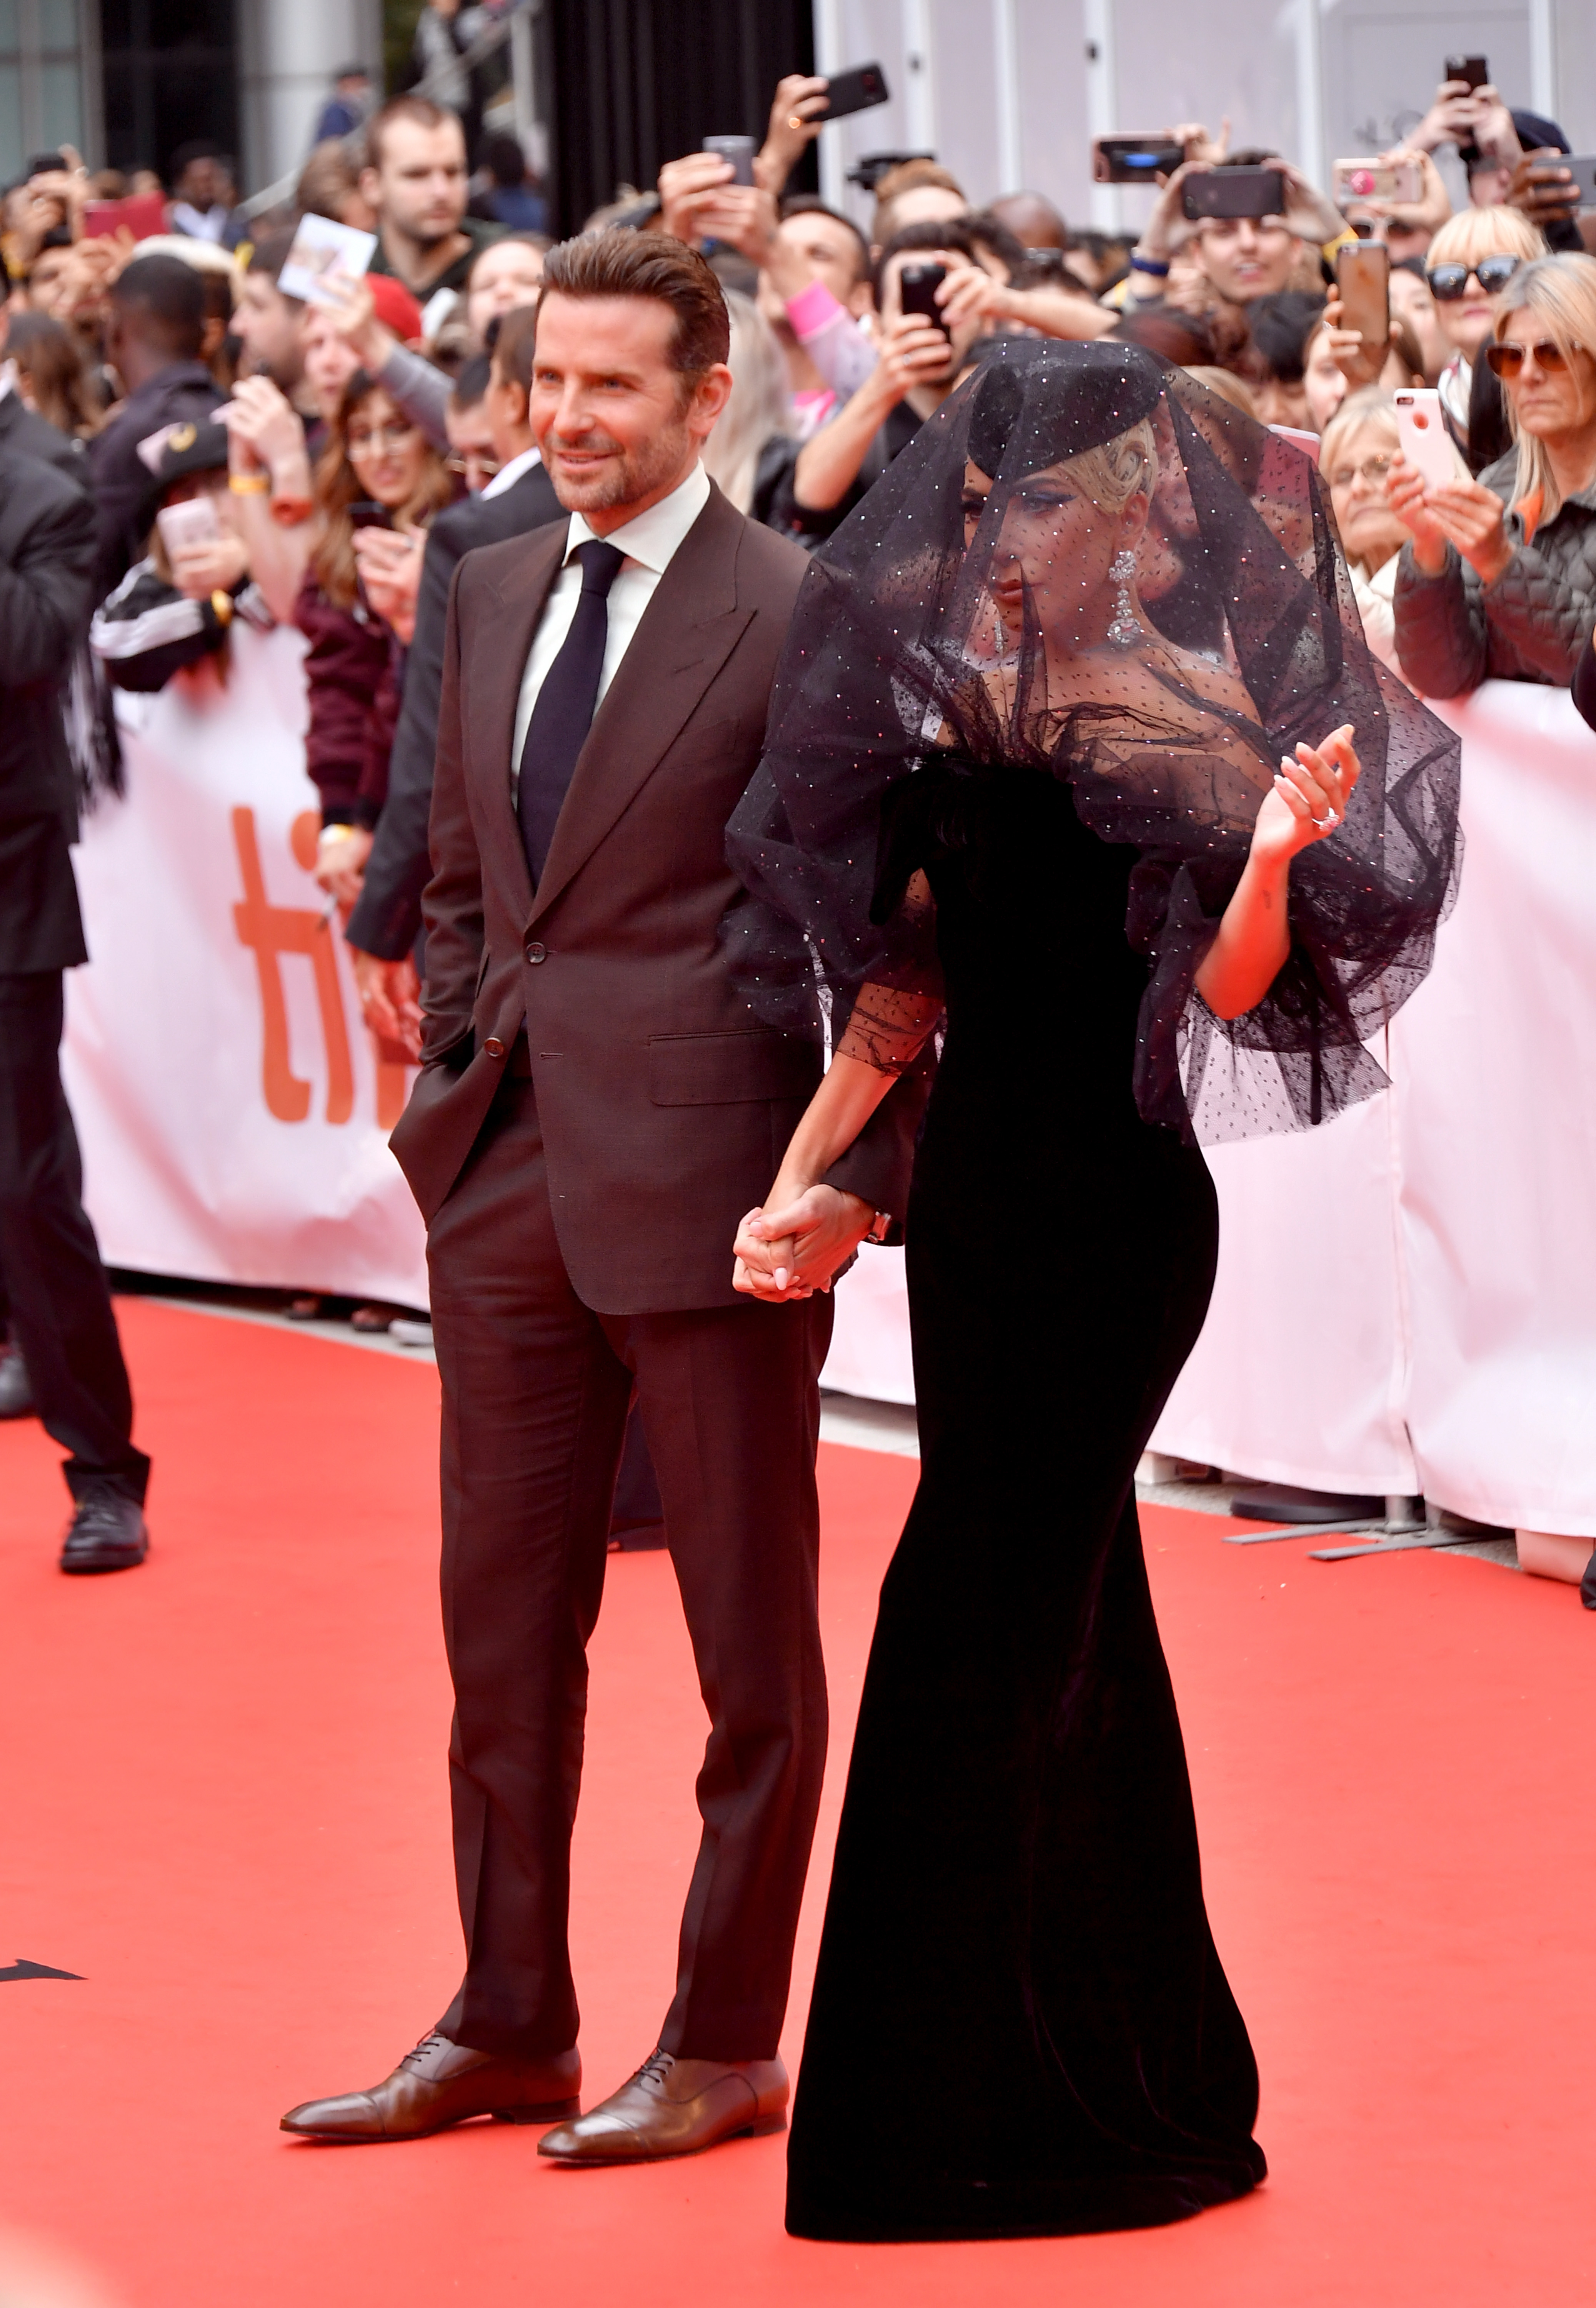 Bradley Cooper (L) and Lady Gaga attend the 'A Star Is Born' premiere during 2018 Toronto International Film Festival at Roy Thomson Hall on September 9, 2018 in Toronto, Canada.